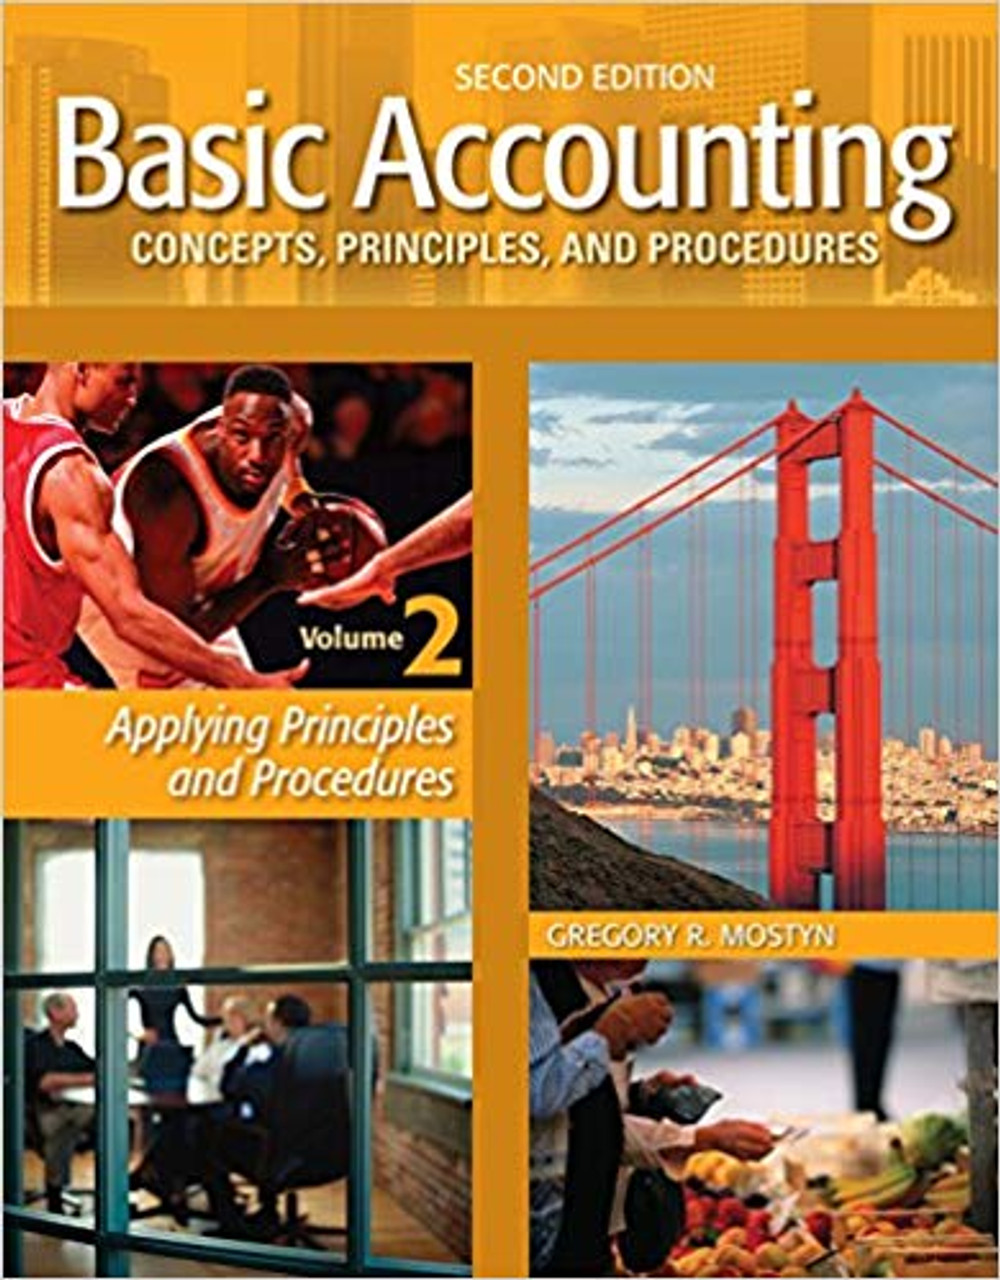 Basic Accounting Concepts  Principles  and Procedures  Vol. 2  2nd edition